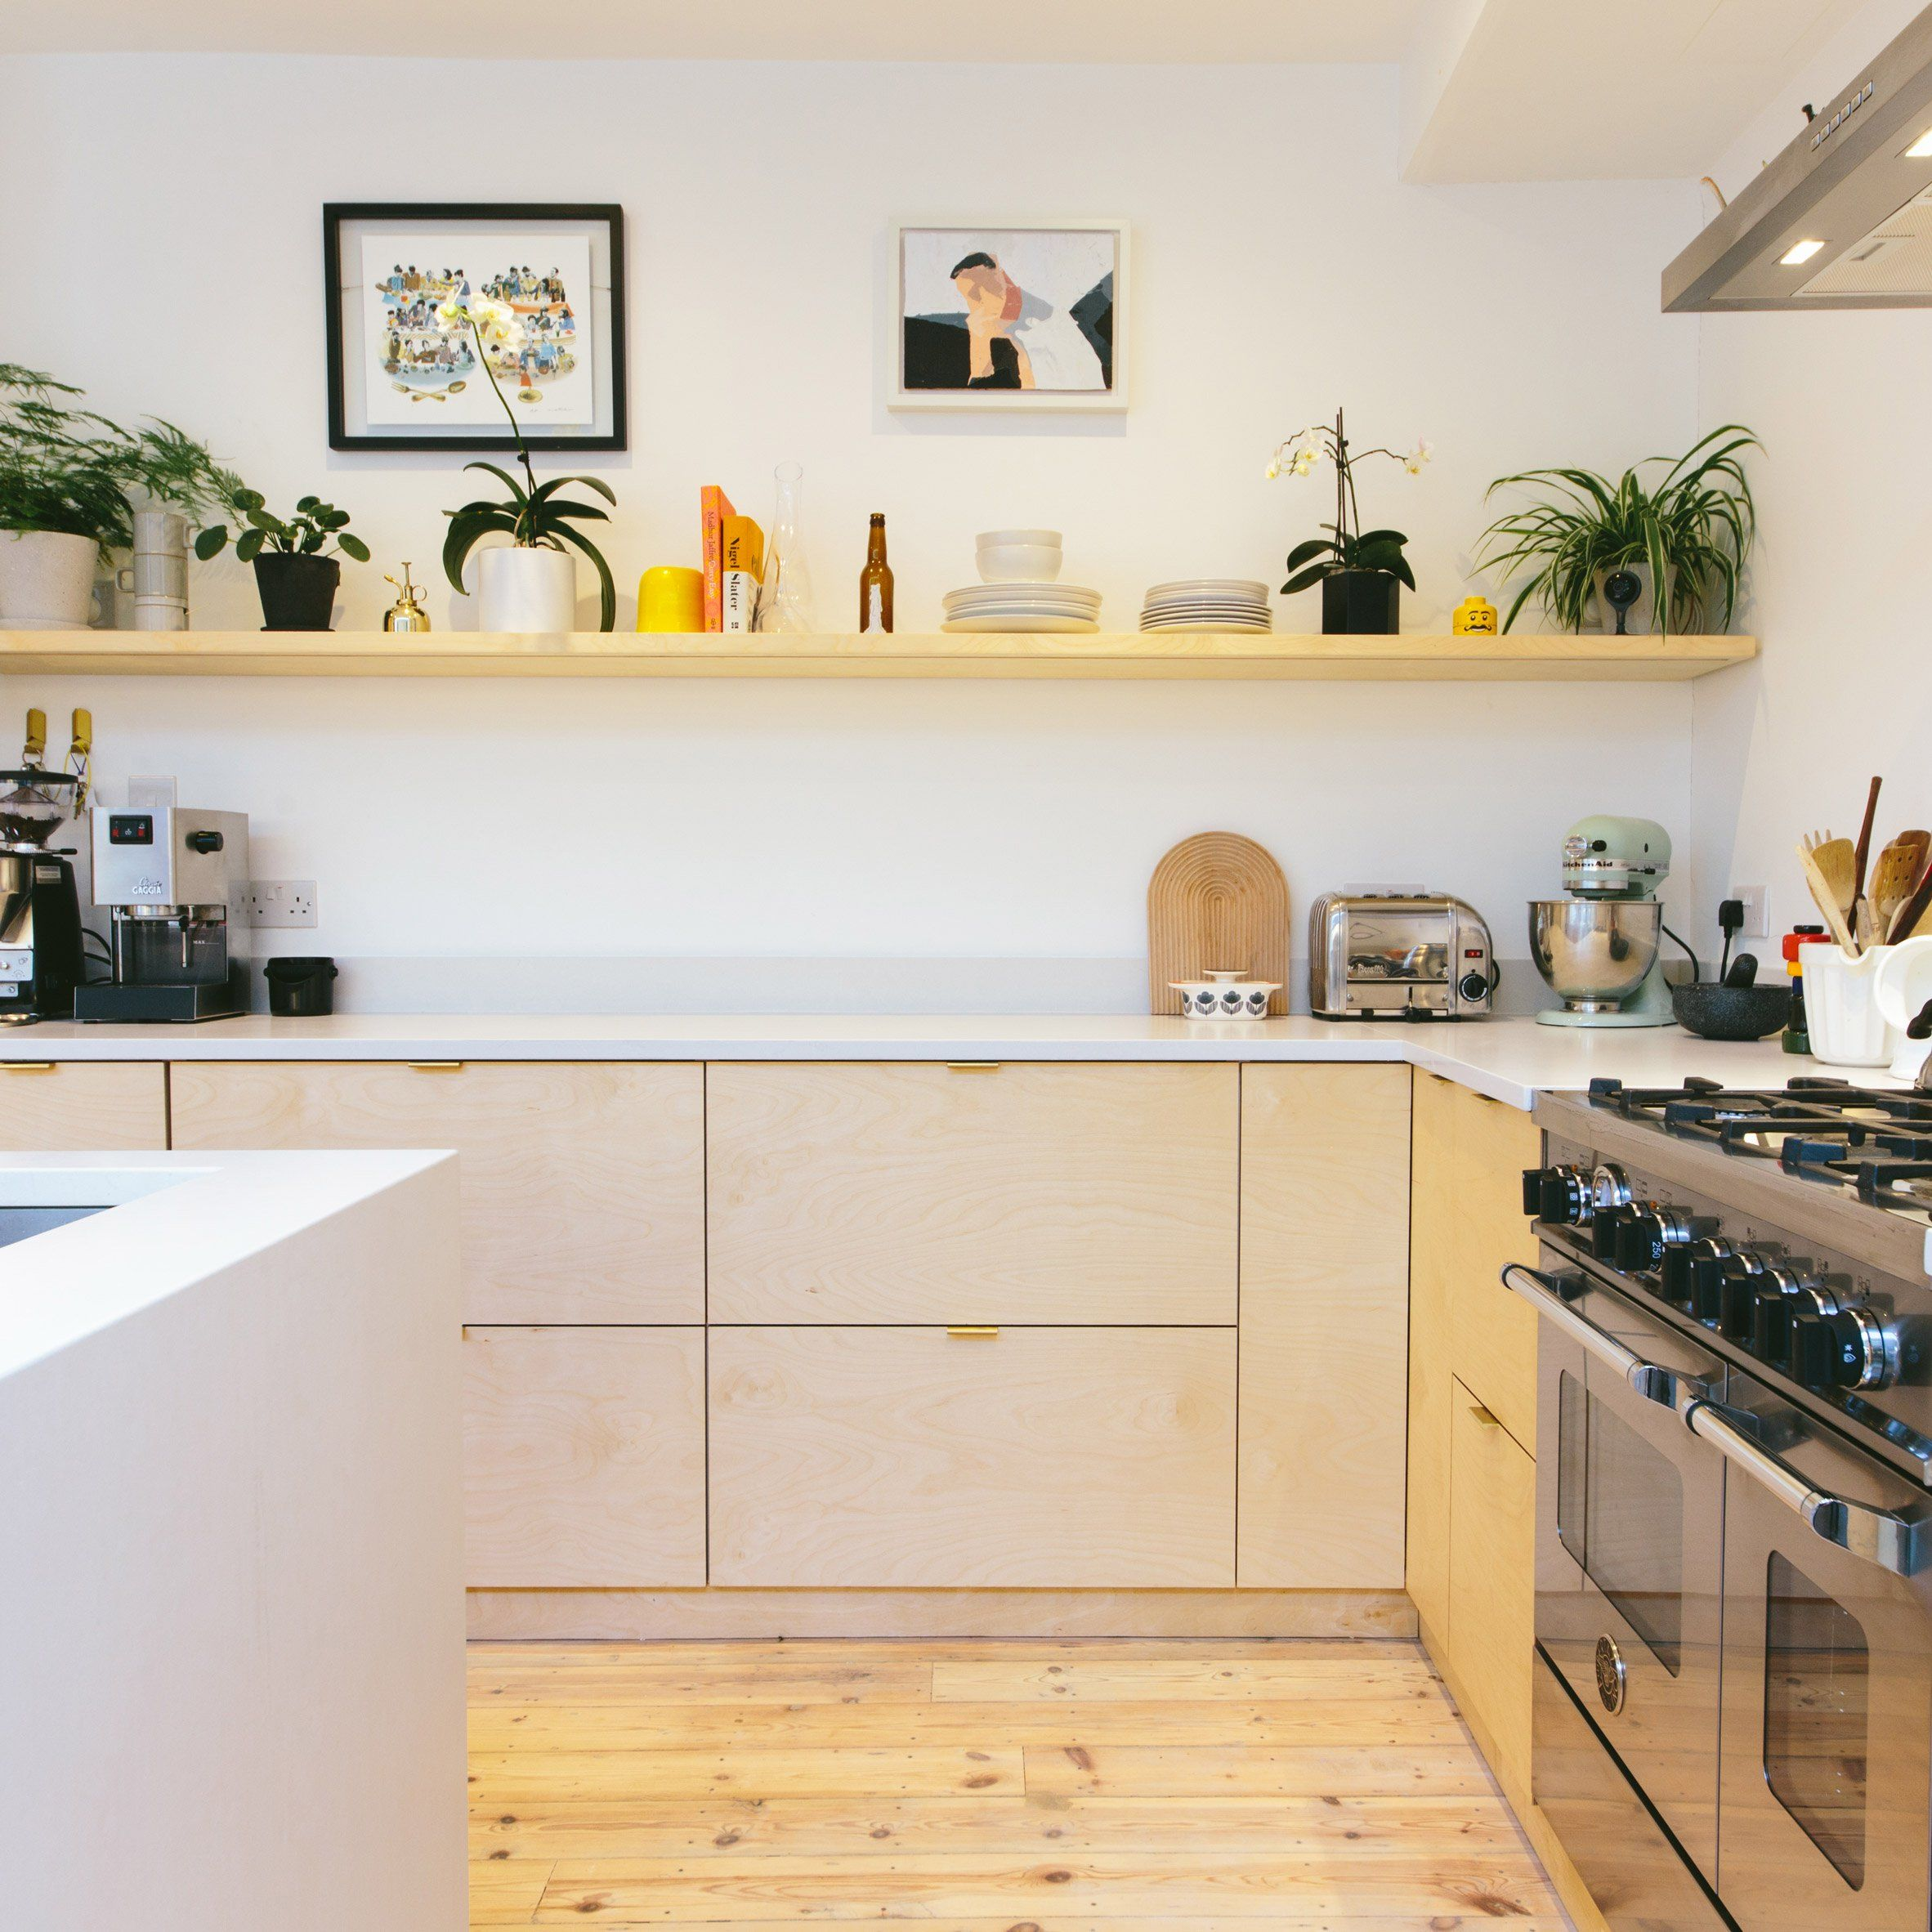 Current obsession: Plywood kitchens | Pinterest | Birch ply, Kitchen ...